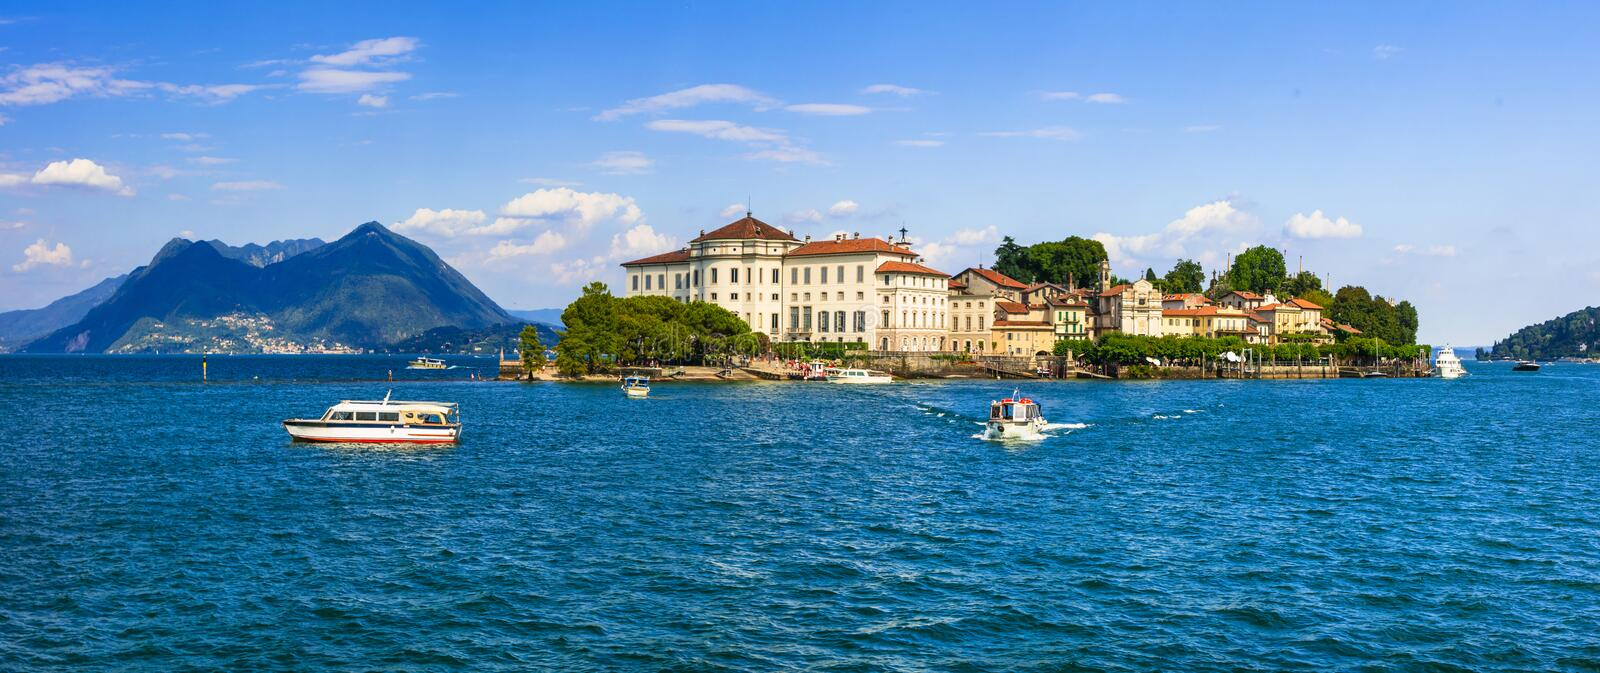 Beautiful lakes of Italy - scenic Lago Maggiore, Borromean island royalty free stock photos